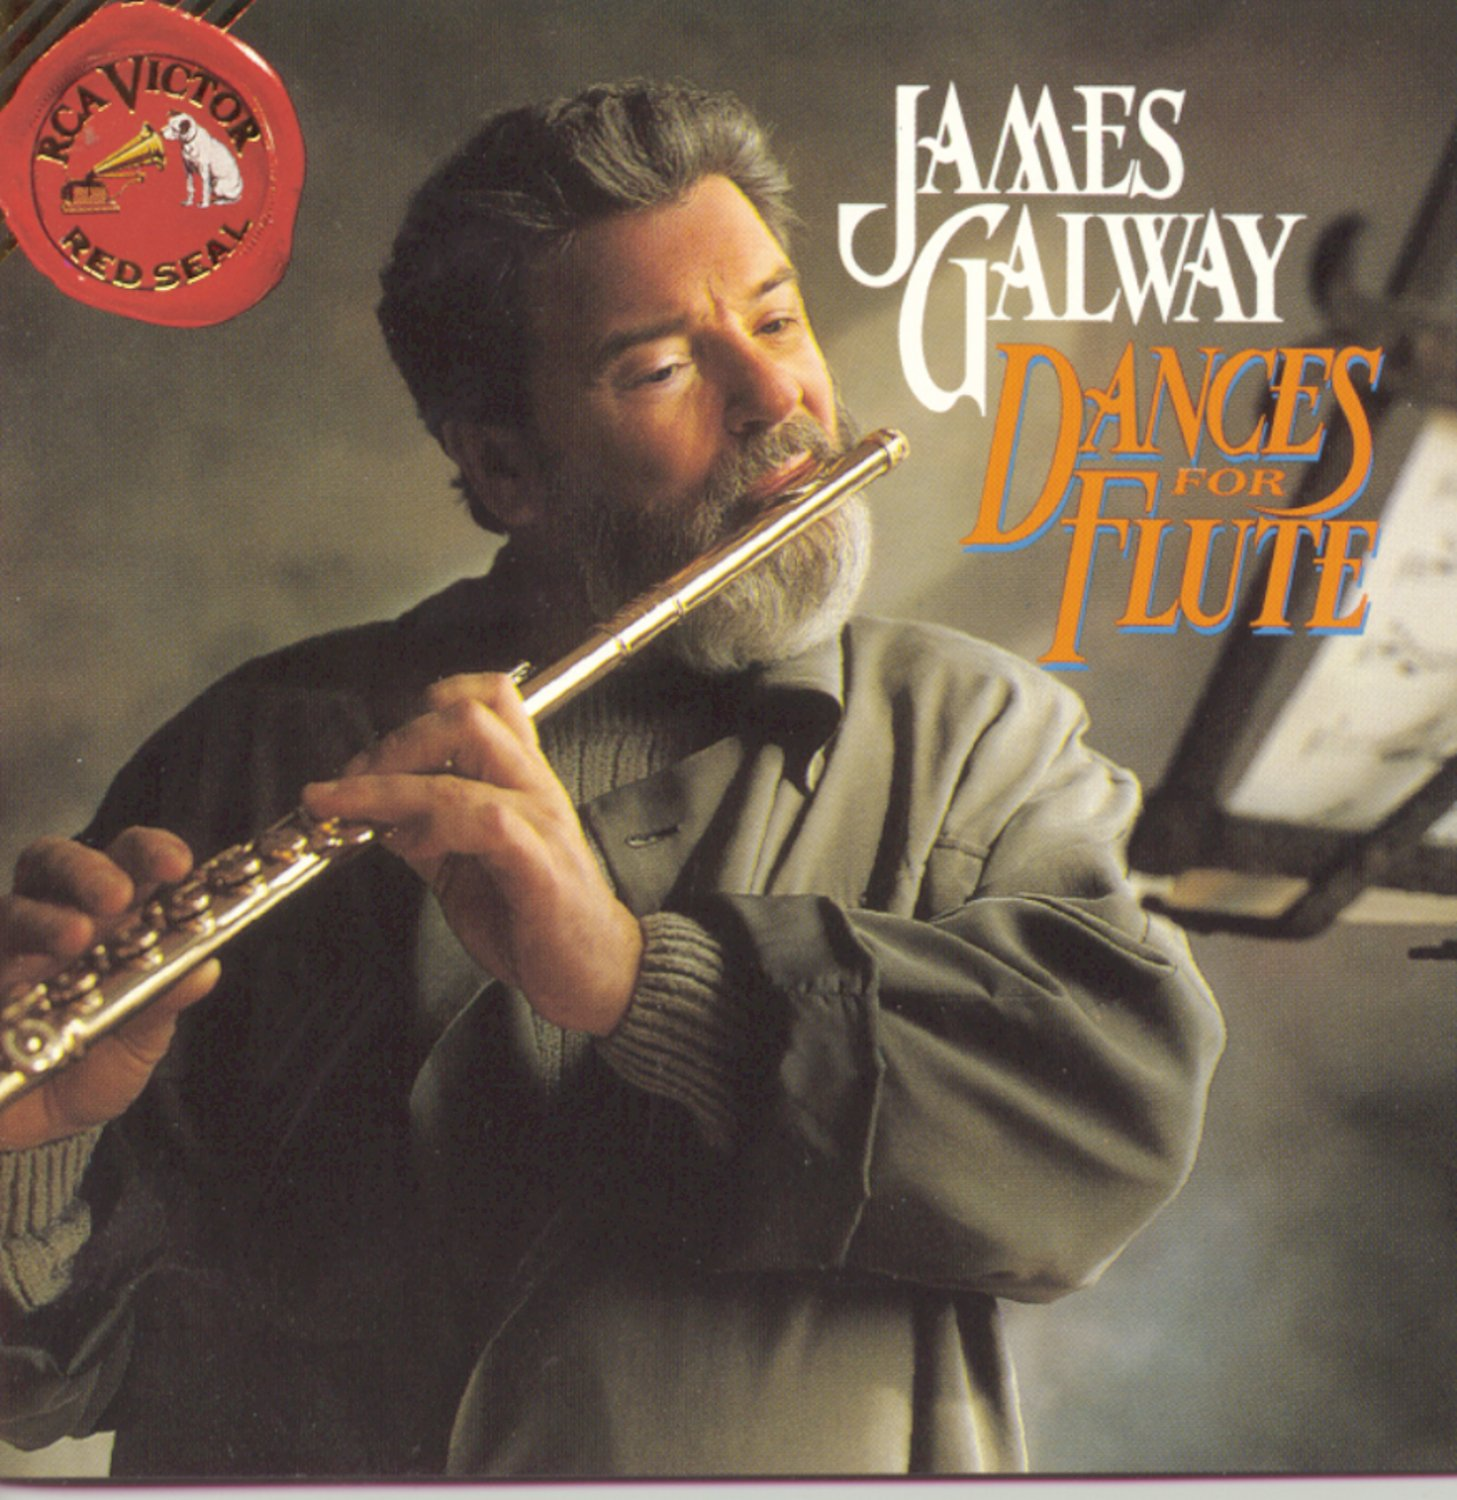 James Galway - Dances for Flute by SONY MASTERWORKS